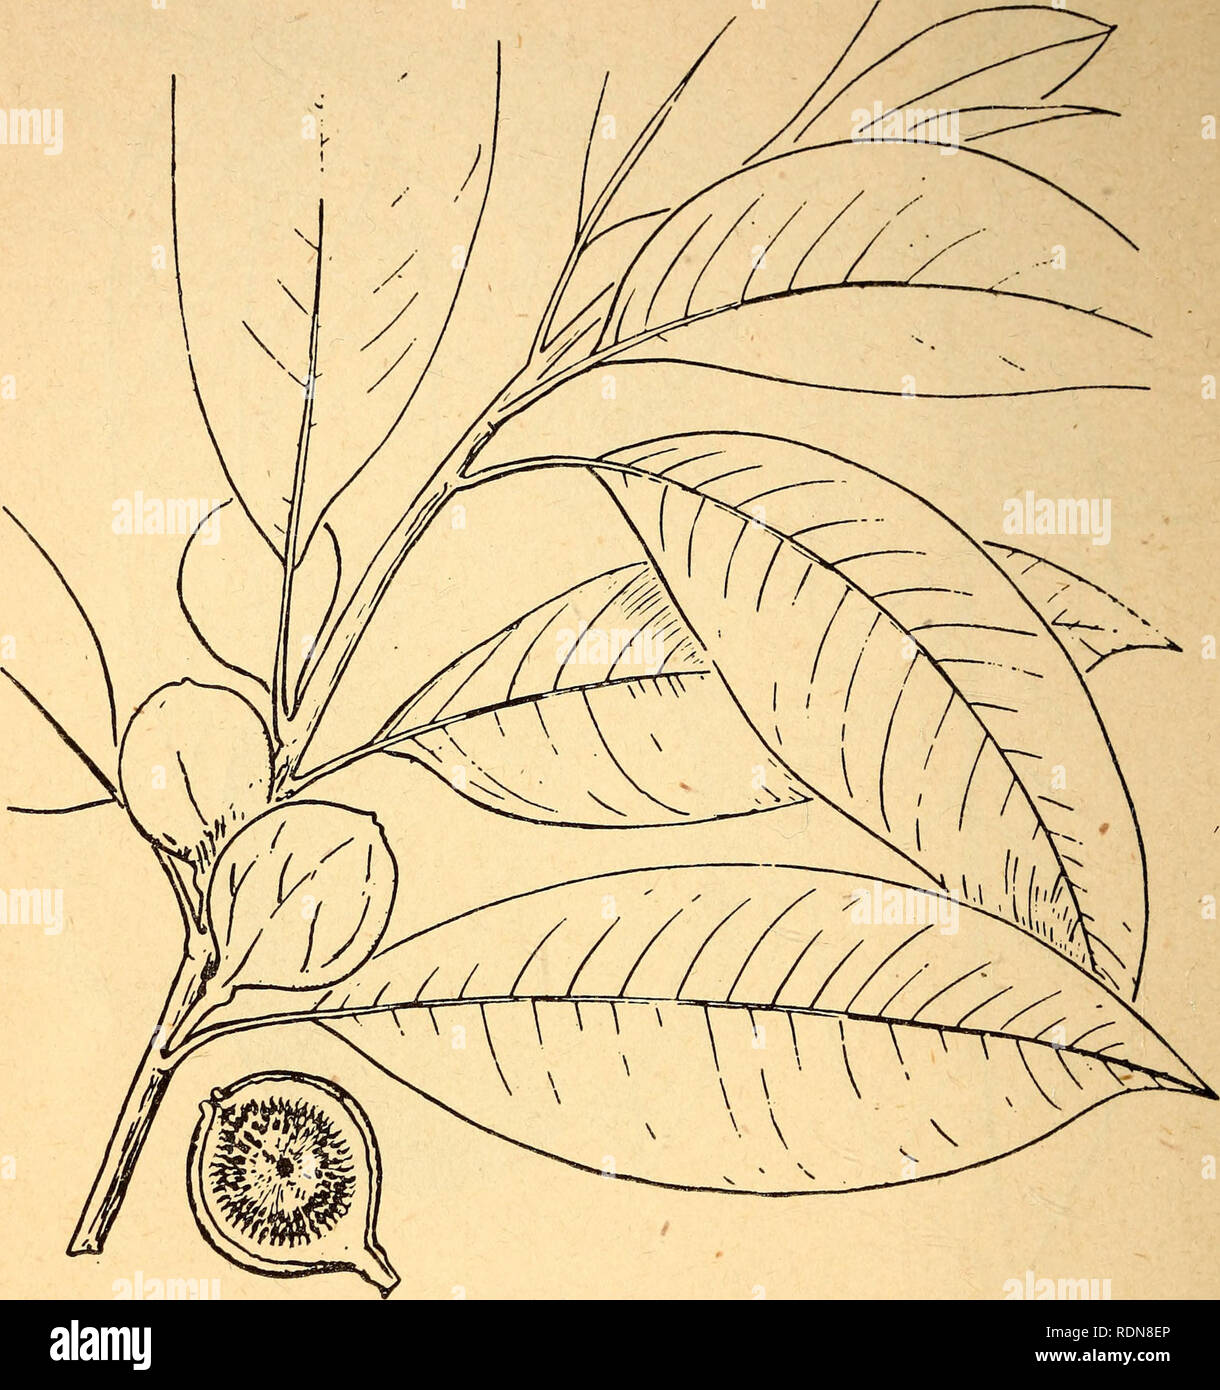 Edible And Poisonous Plants Of The Caribbean Region Plants